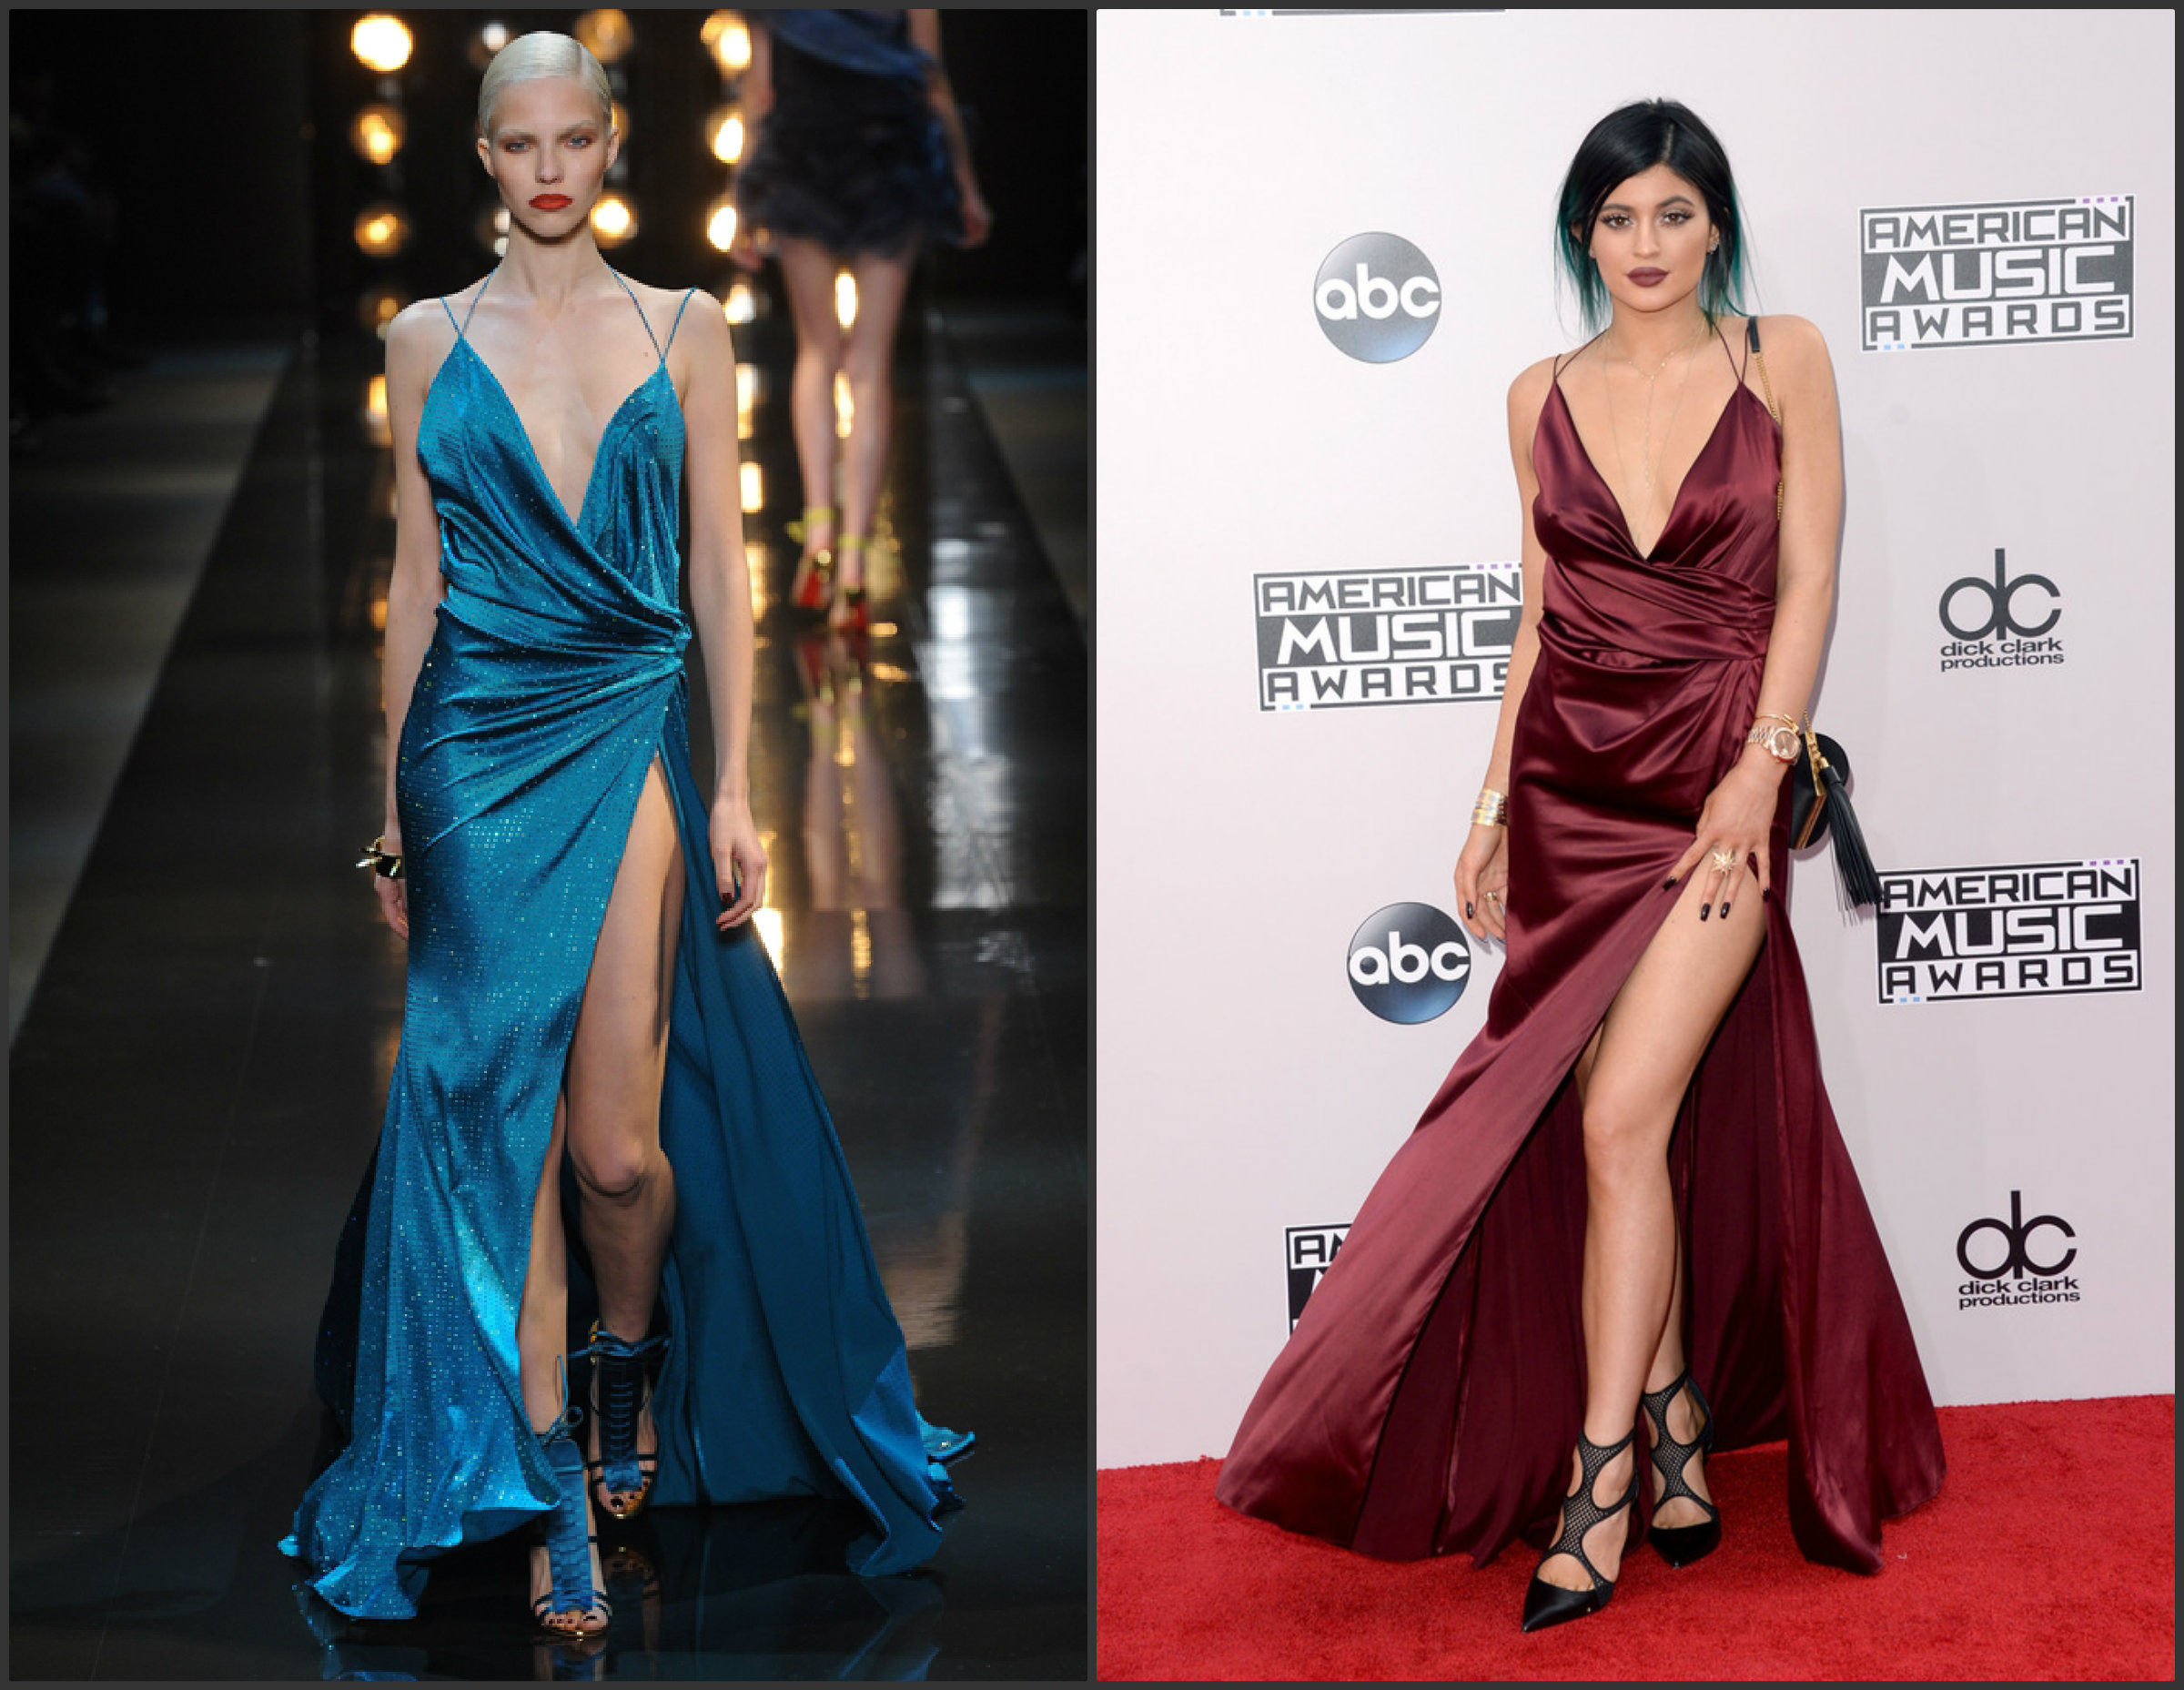 Kylie-Jenner-in-Alexandre-Vauthier-2014-American-Music-Awards